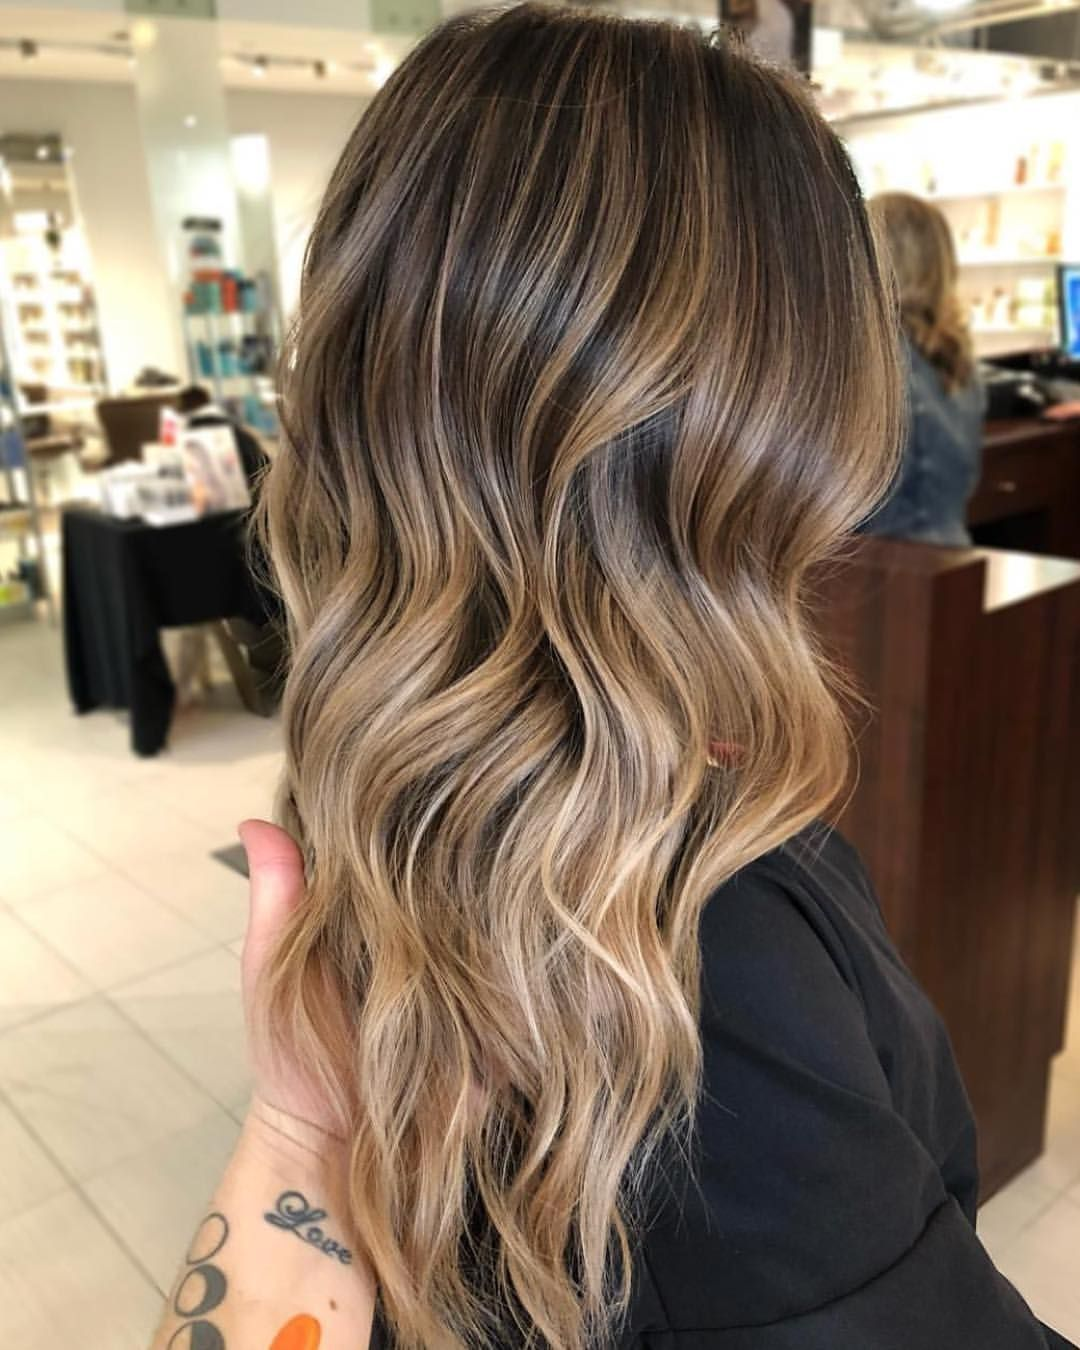 Hairstyle Ideas South Africa Hairstyle Ideas Square Face Ideas And Hairstyle H In 2020 Brown Hair Balayage Hair Color Light Brown Brown Hair With Blonde Highlights